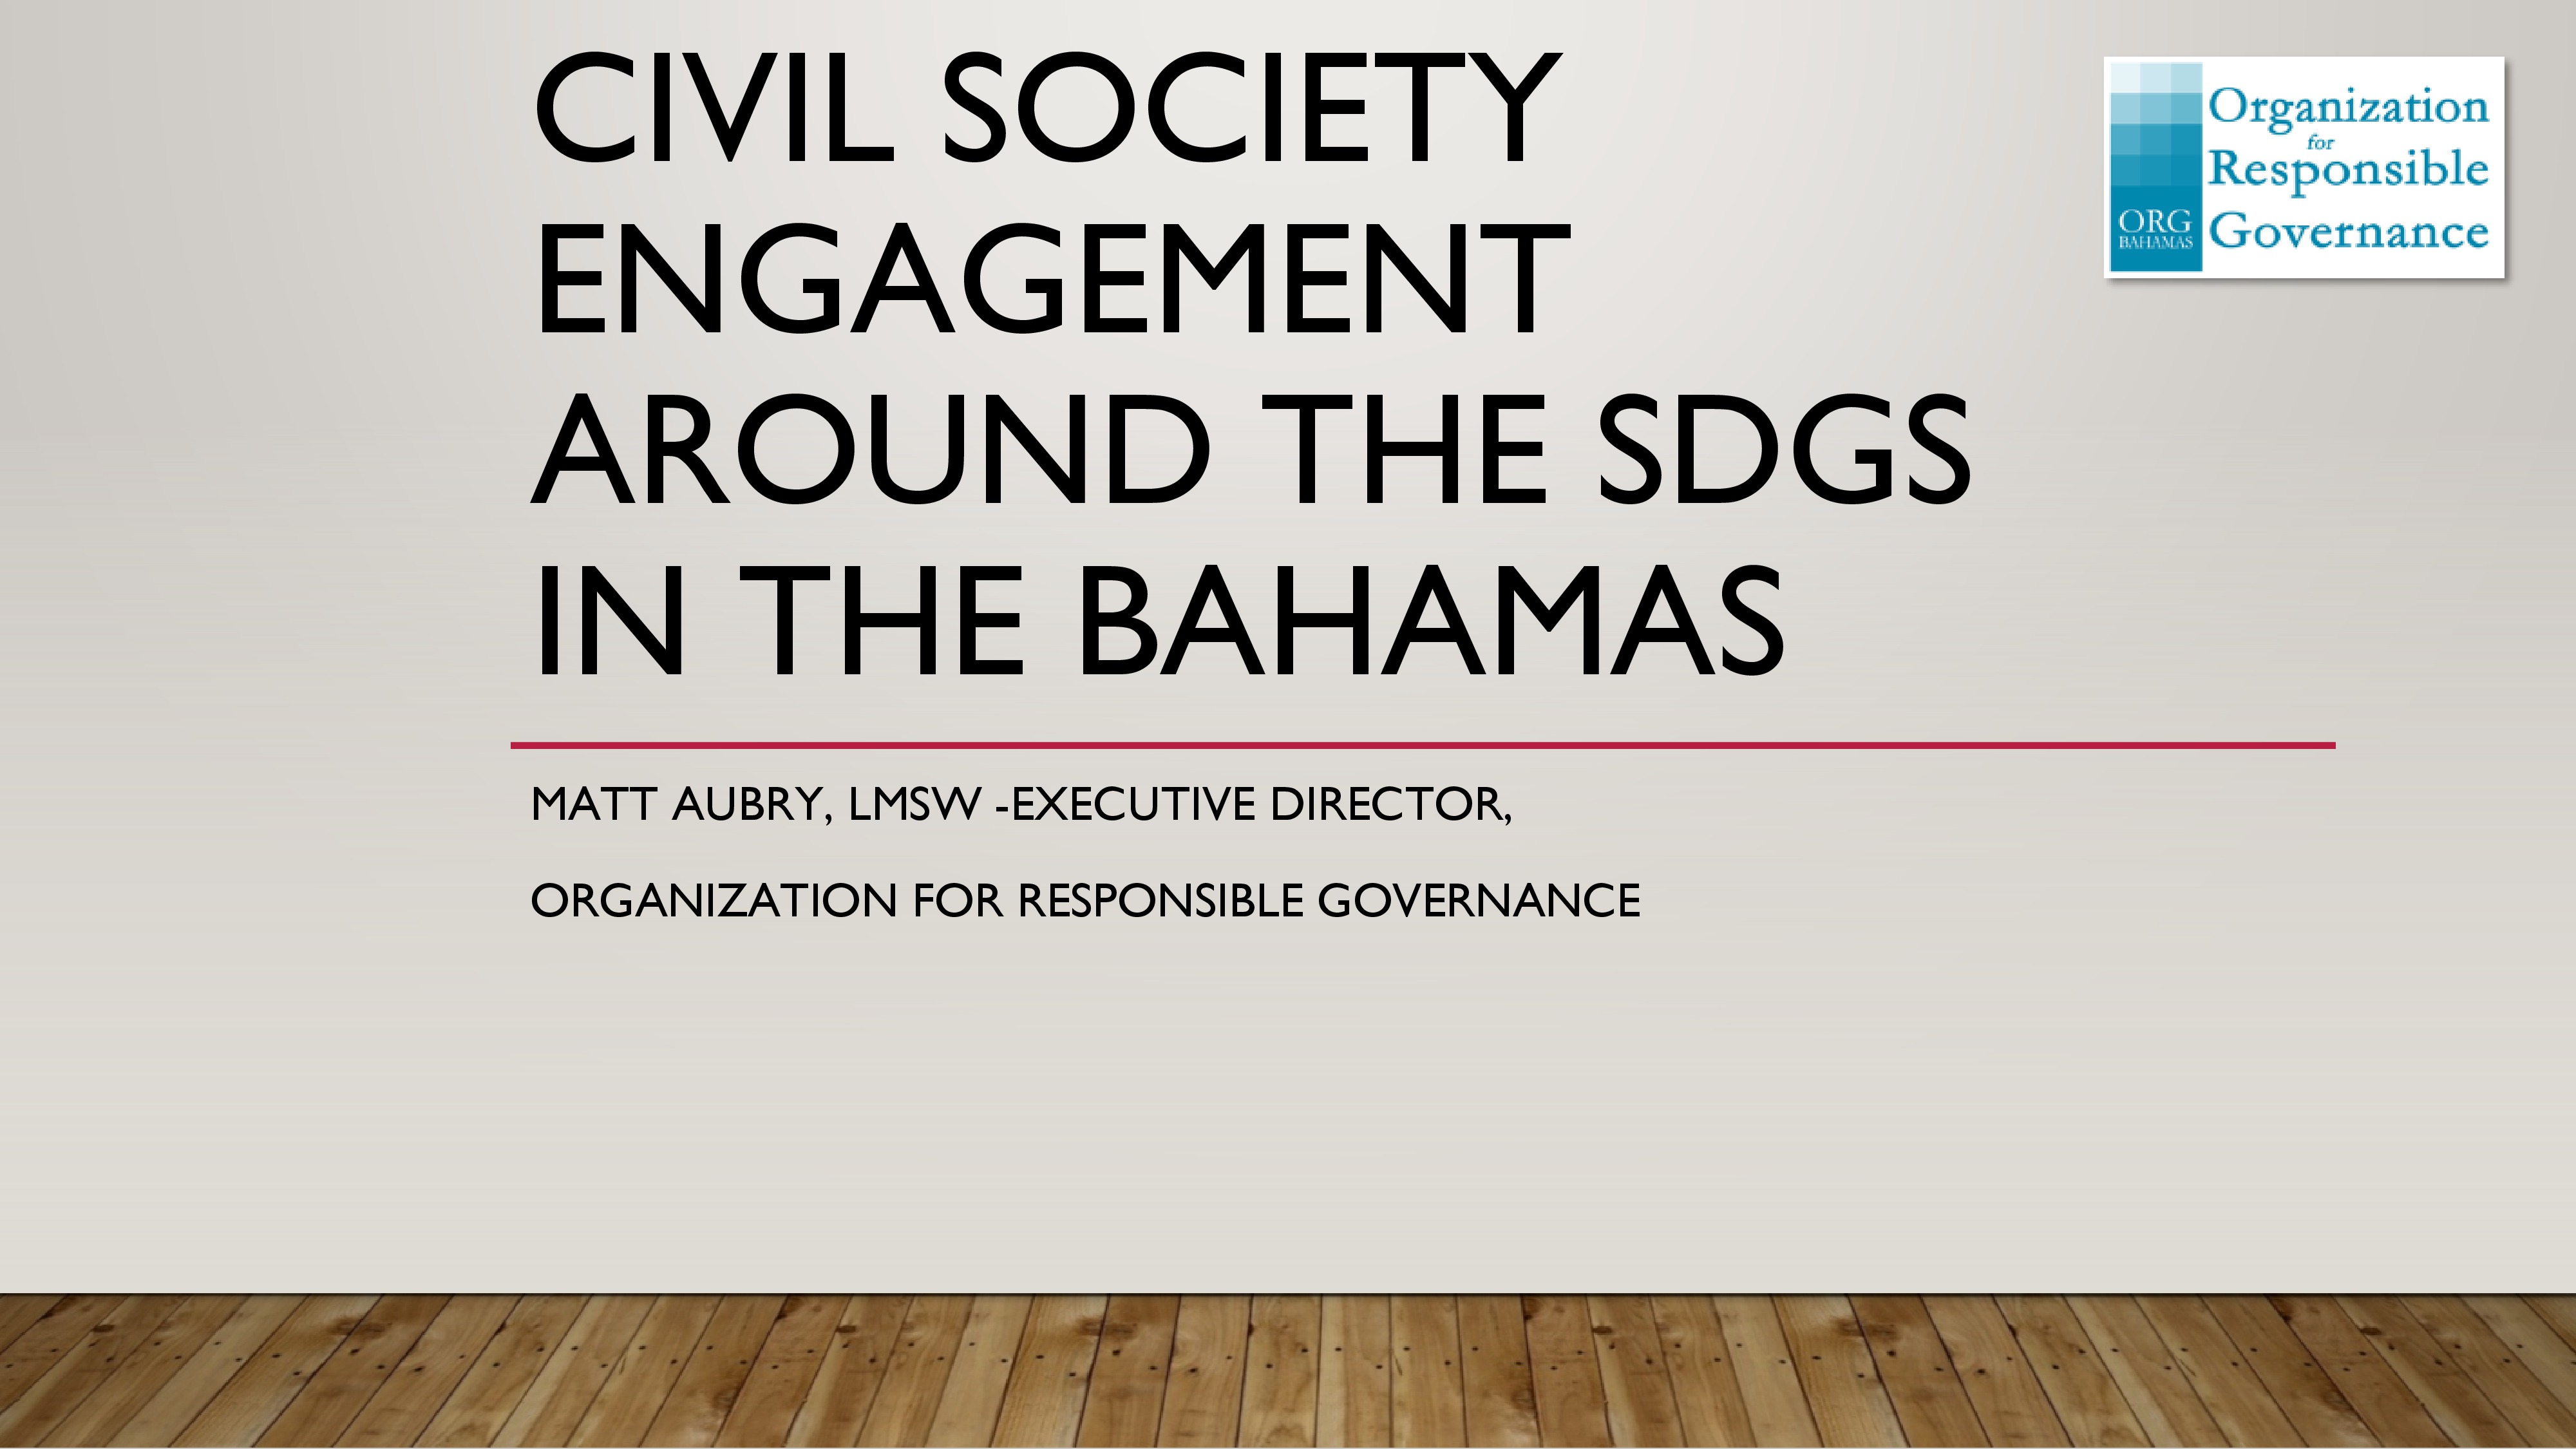 Civil Society Engagement around the SDGs in The Bahamas-0